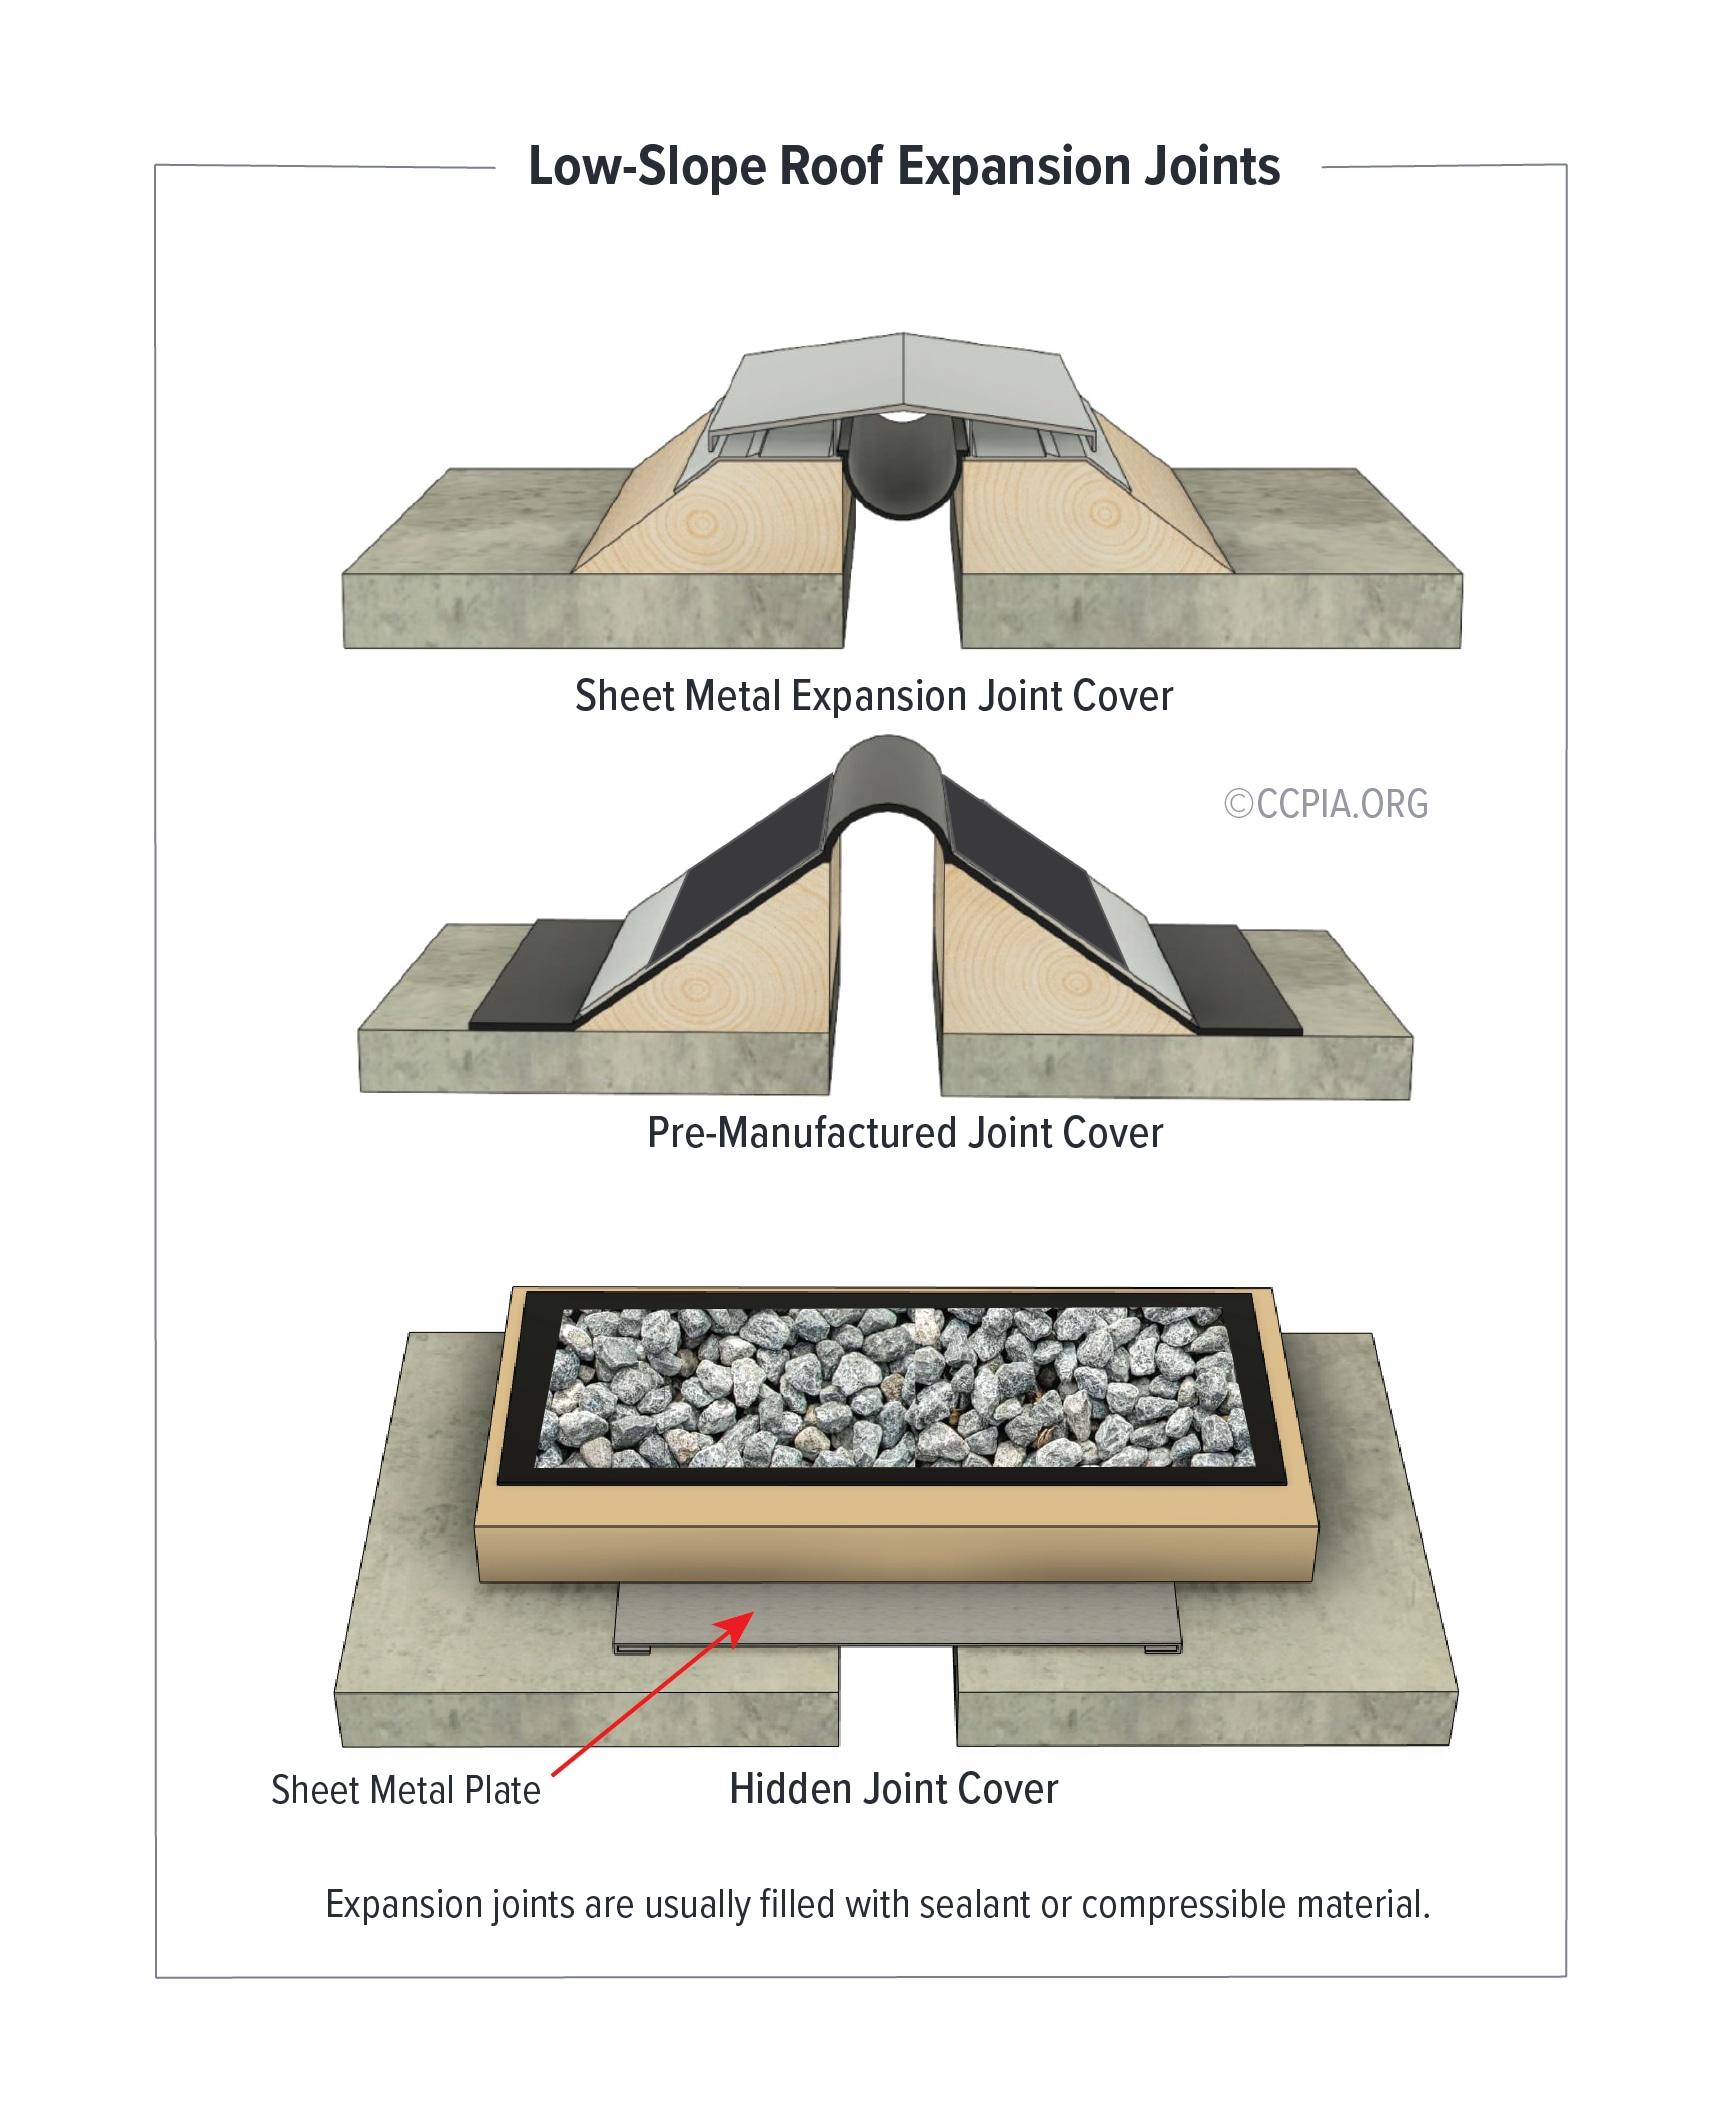 Types of Low-Slope Roof Expansion Joints: Sheet Metal Expansion Joint Cover, Pre-Manufactured Joint Cover, Hidden Joint Cover